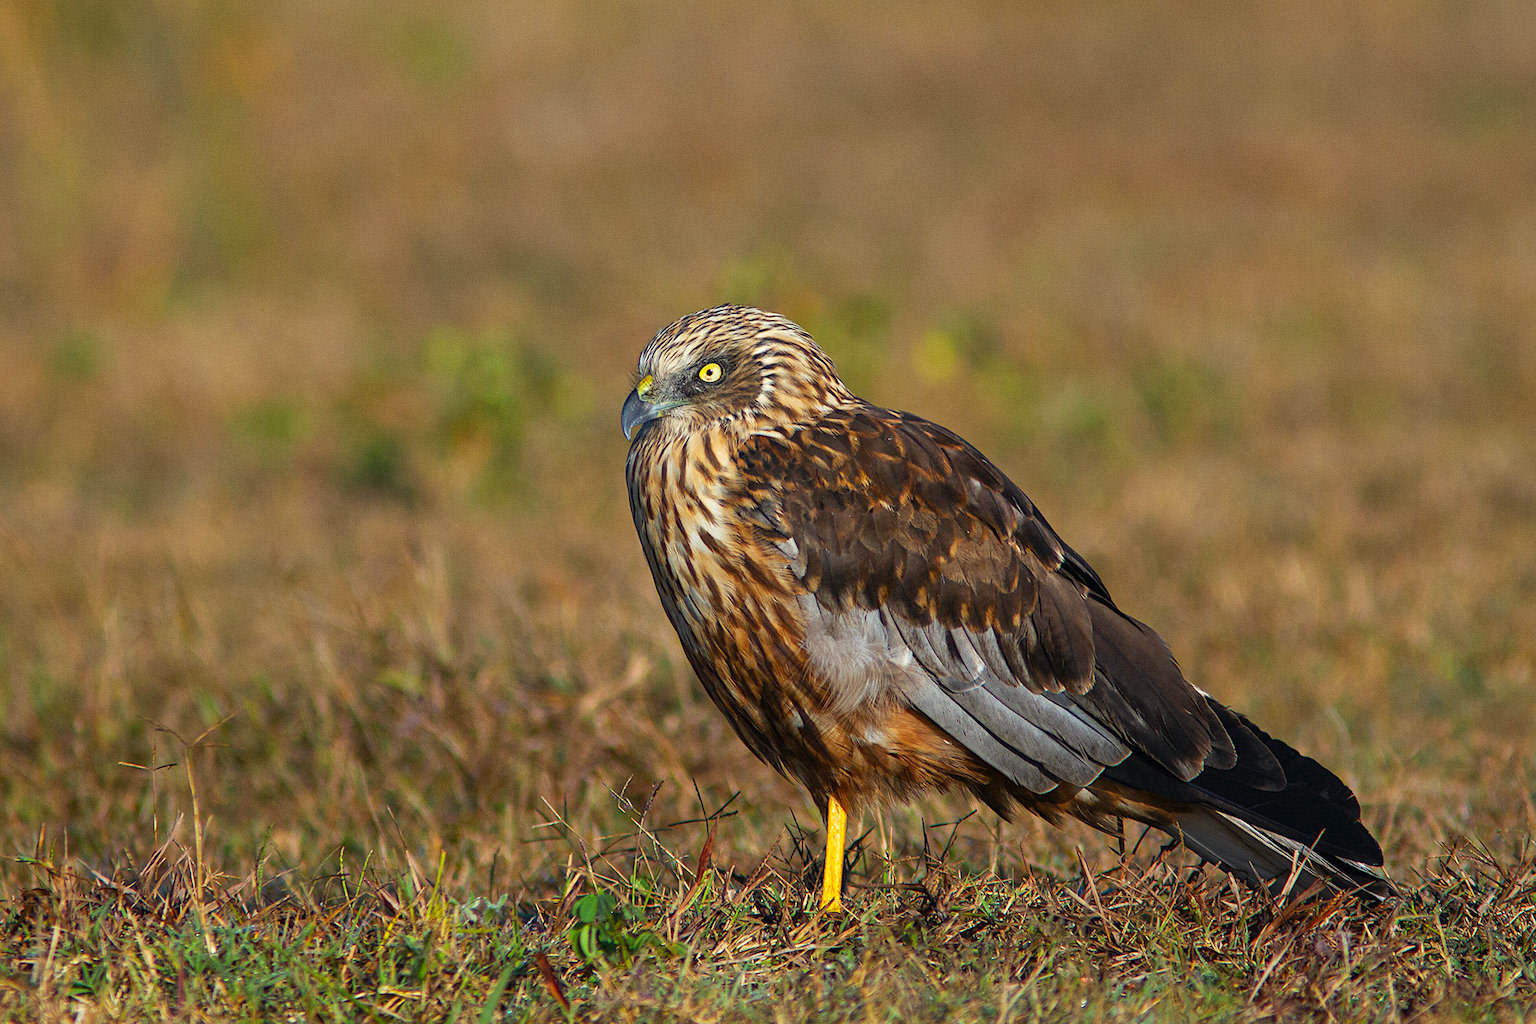 Two species of marsh harriers winter in India. Western marsh harriers (Circus aeruginosus) are common and widespread across the country, while eastern marsh harriers (Circus spilonotus) are rare and largely restricted to northeast and southeast India. These birds usually inhabit marshlands, waterbodies with reeds, and open grasslands. Marsh harriers hunt by gliding low, slowly looking for prey. They feed on waterfowl (sometimes as heavy as them), small birds, small mammals, reptiles, frogs, insects and fish. Unlike most harrier species marsh harriers tend to gather in small numbers over large waterbodies, probably due to their habitat preferences.